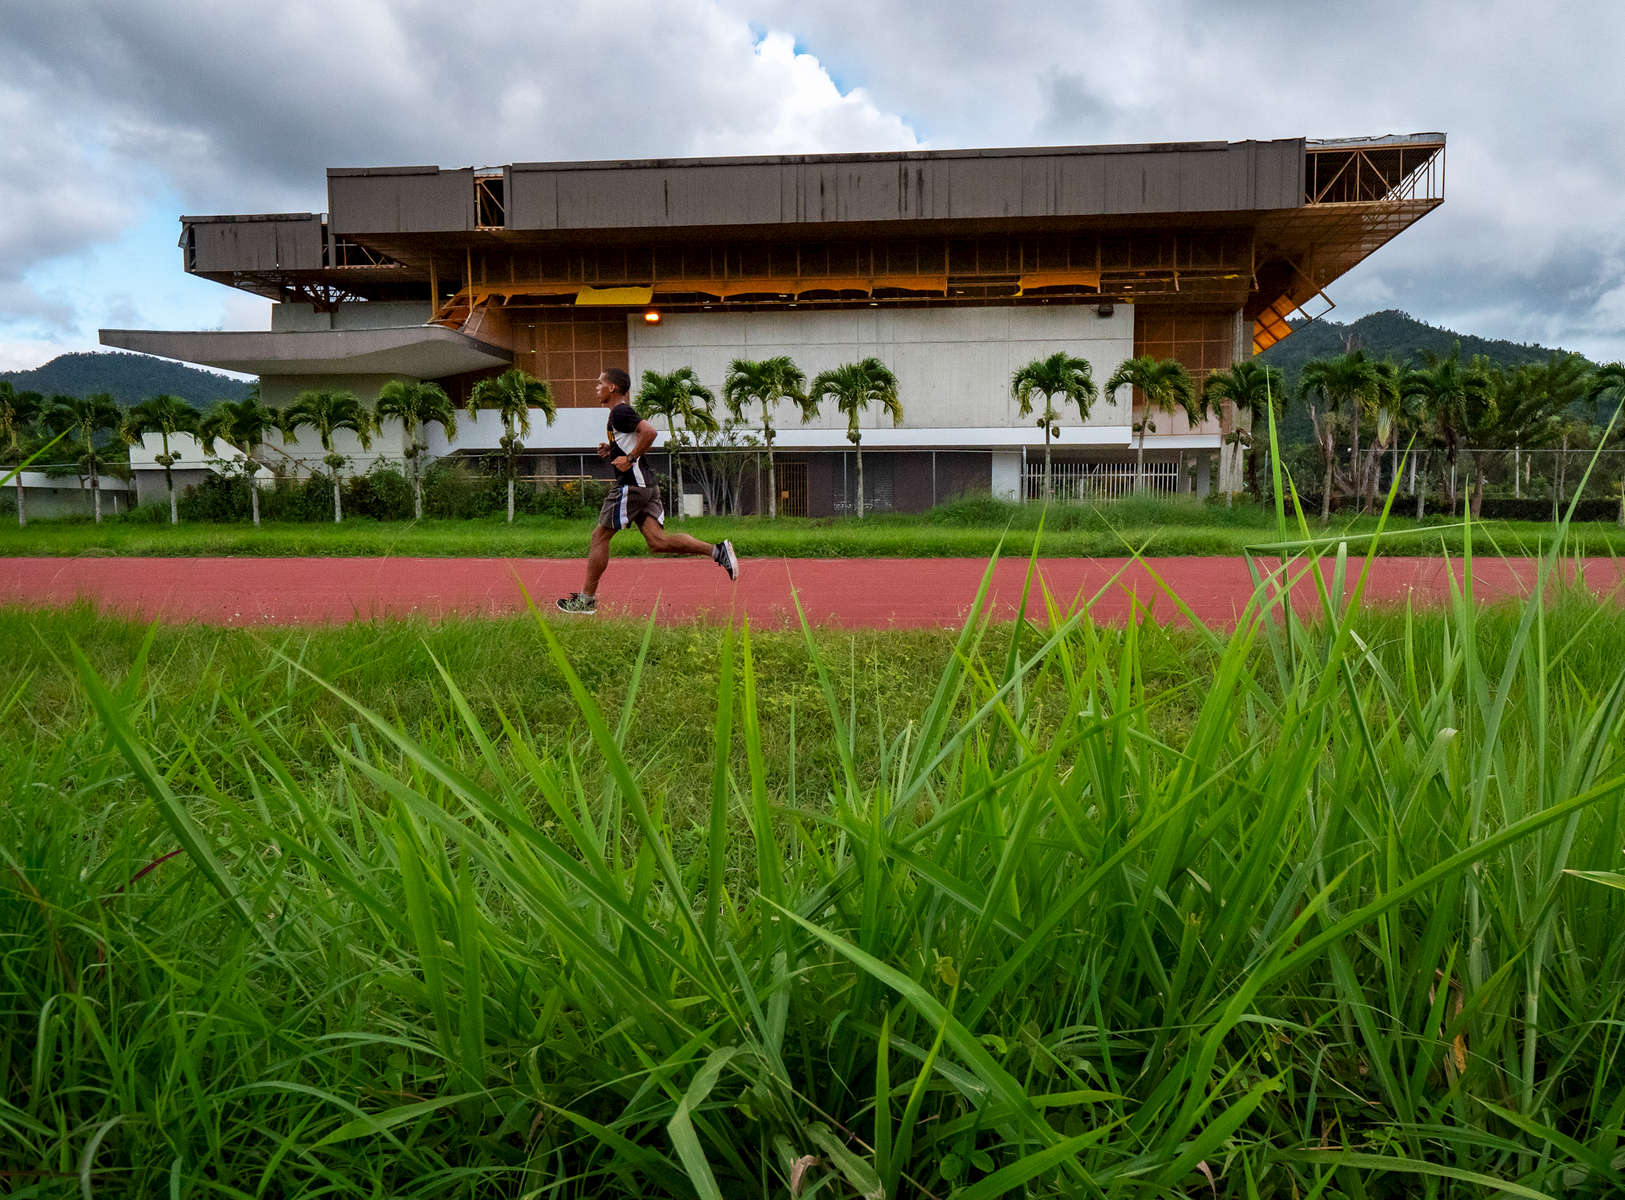 CAYEY, PUERTO RICO - NOVEMBER 10:  Juan Hernandez Gonzalez who is a student at the Cayay campus of the University of Puerto Rico runs on the University's athletics track that that had been damaged by Hurricane Maria and is now overun by uncut grass on November 10, 2018 in Cayey, Puerto Rico. The effort continues in Puerto Rico to remain and rebuild more than one year after the Hurricane Maria hit and devastated the island on September 20, 2017. The official number of deaths from the disaster is 2,975.